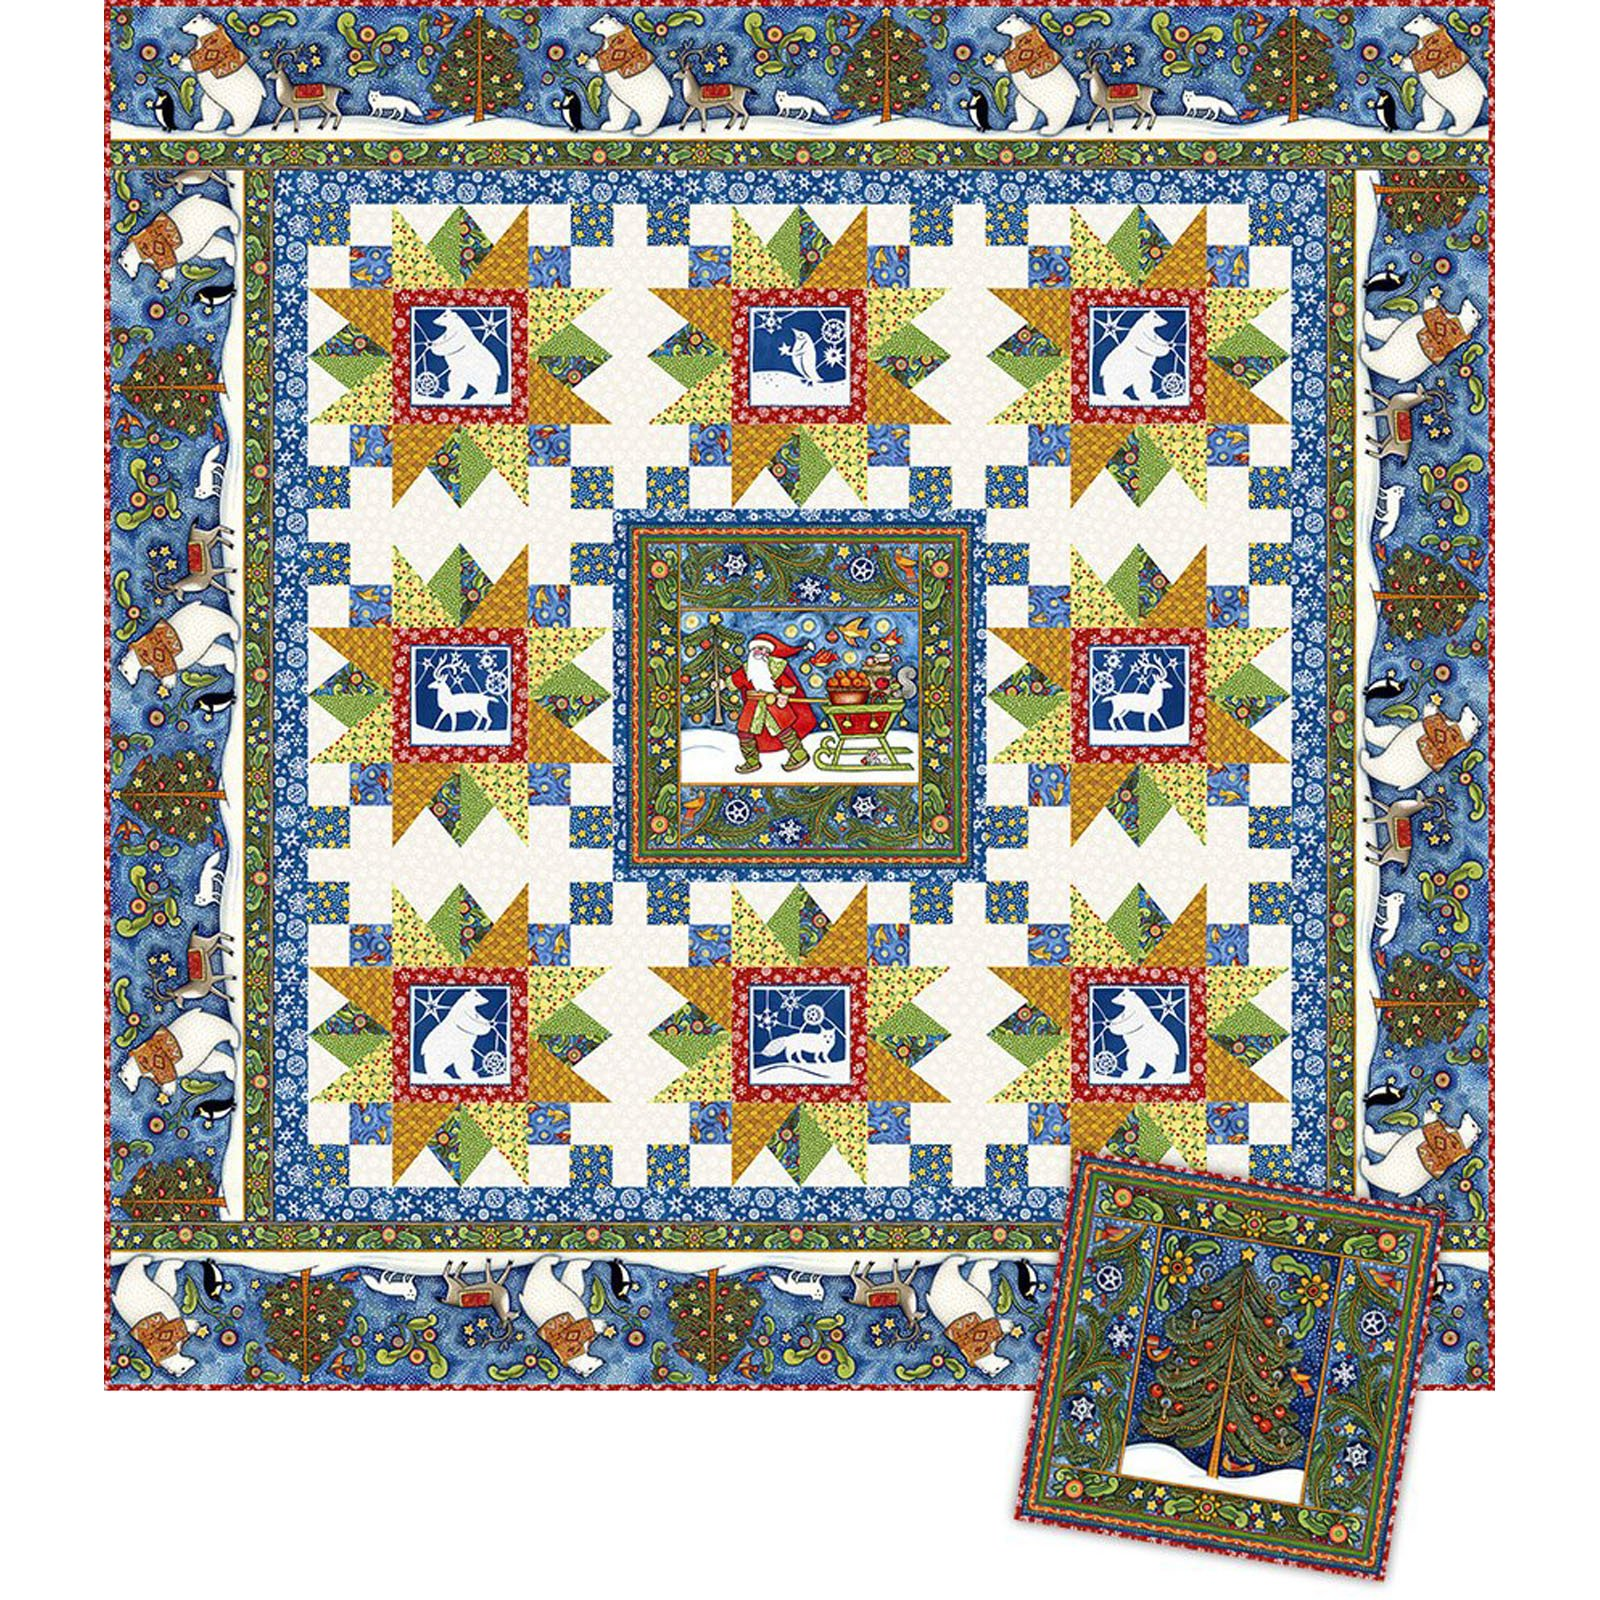 INTH-JPL PATT - SNOWY QUILT & PILLOW PATTERN  - AVAILABLE TO ORDER